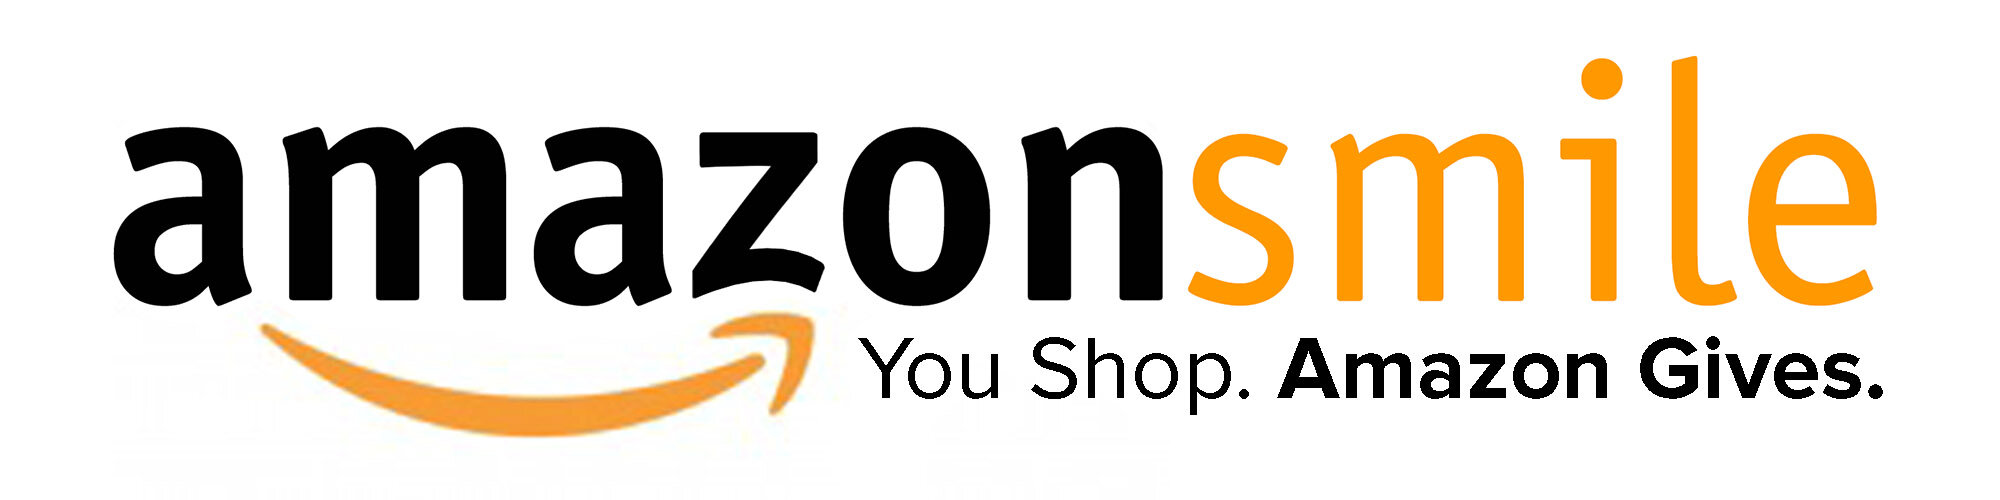 You shop, Amazon gives . To shop at AmazonSmile, simply go to  smile.amazon.com  from the web browser on your computer or mobile device. You may also want to add a bookmark to  smile.amazon.com  to make it even easier to return and start your shopping at AmazonSmile. AmazonSmile is also supported on Amazon's  Android App . From the app menu, go to Settings, then AmazonSmile, and turn it on.